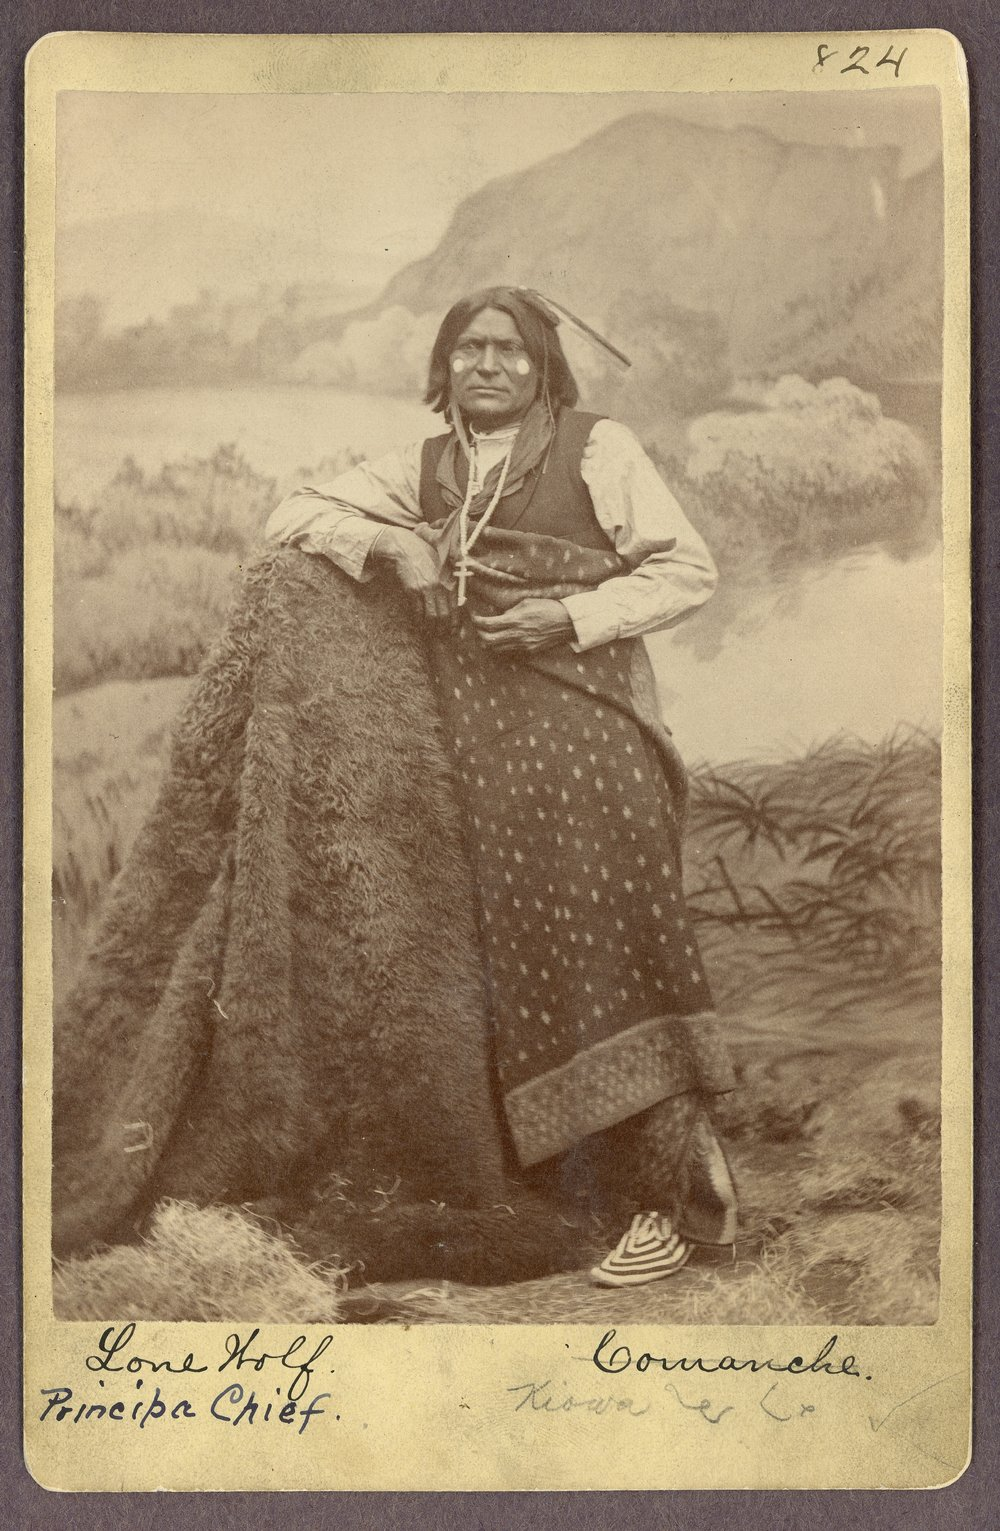 Comanche man in Indian Territory - 1